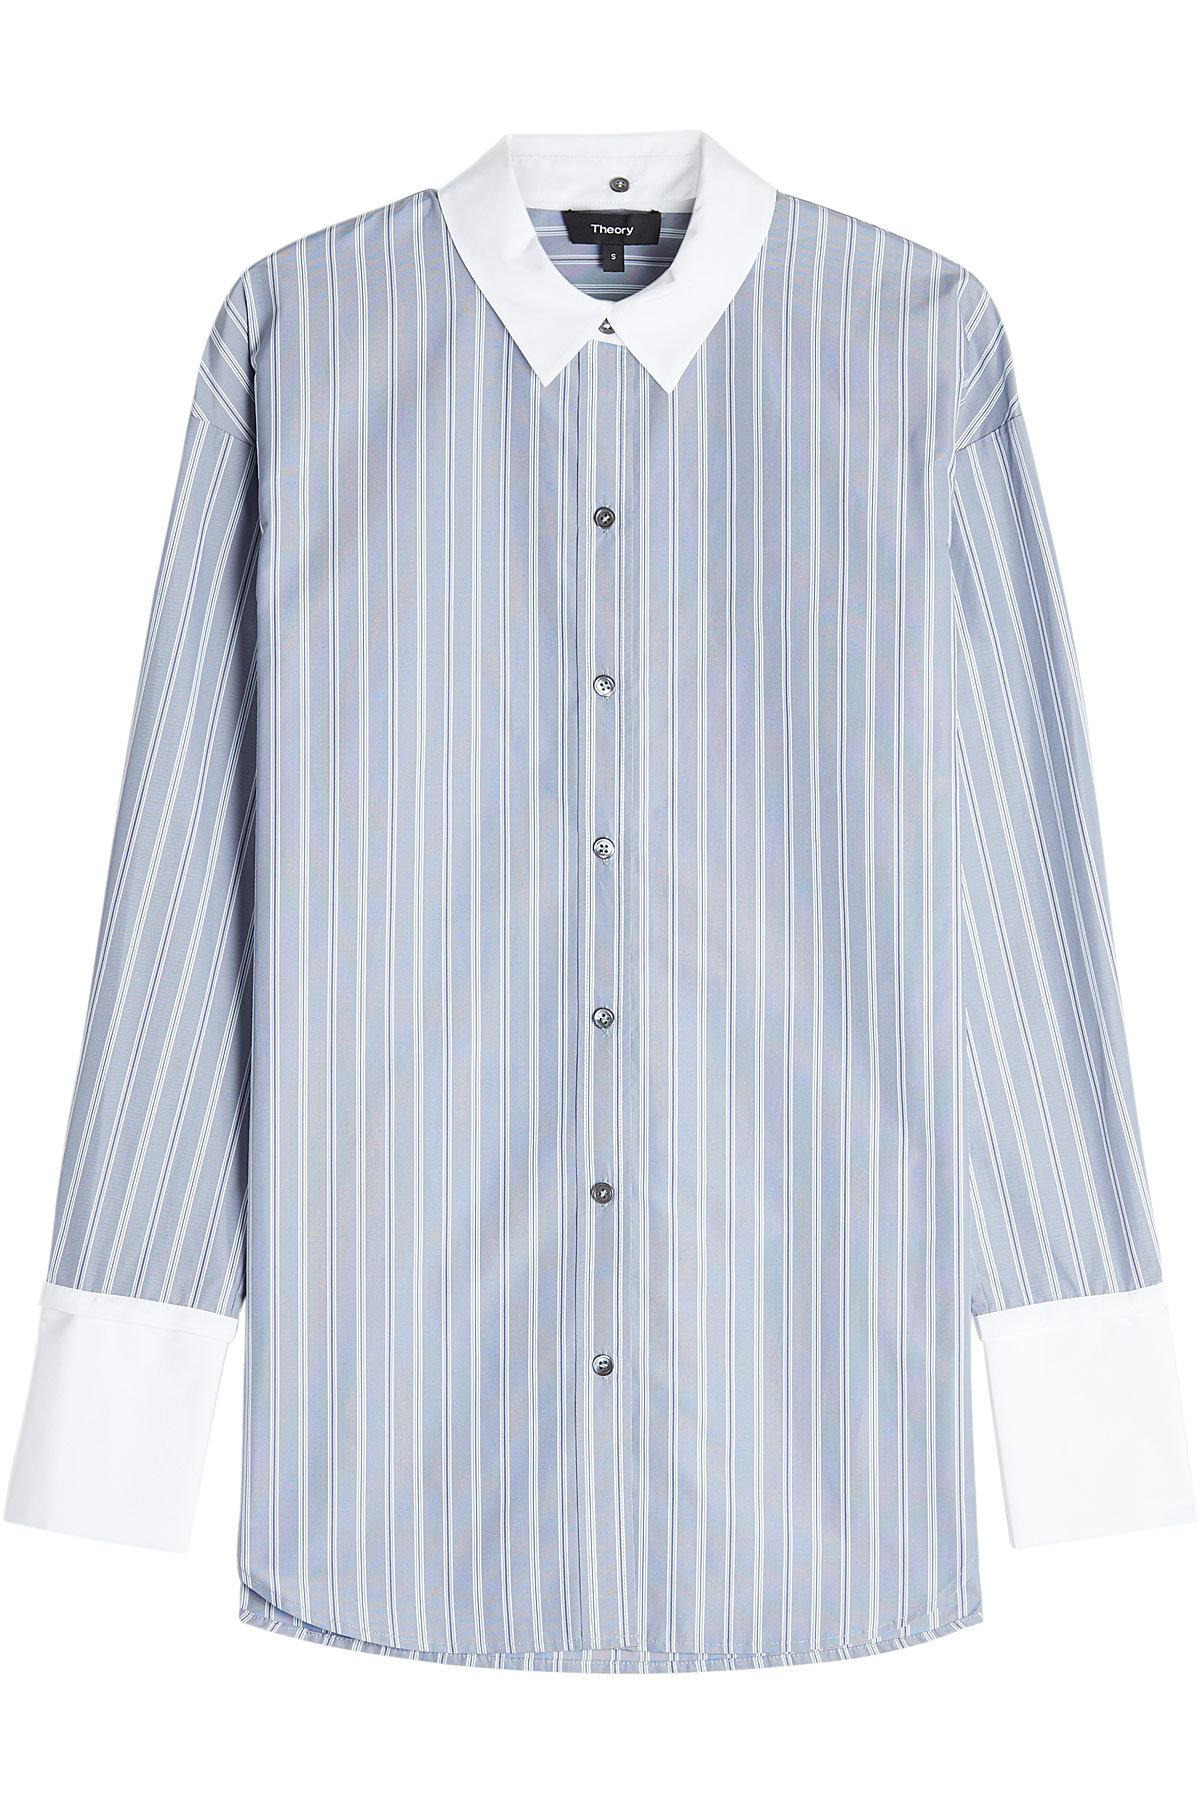 Theory Striped Shirt With Cotton In Stripes